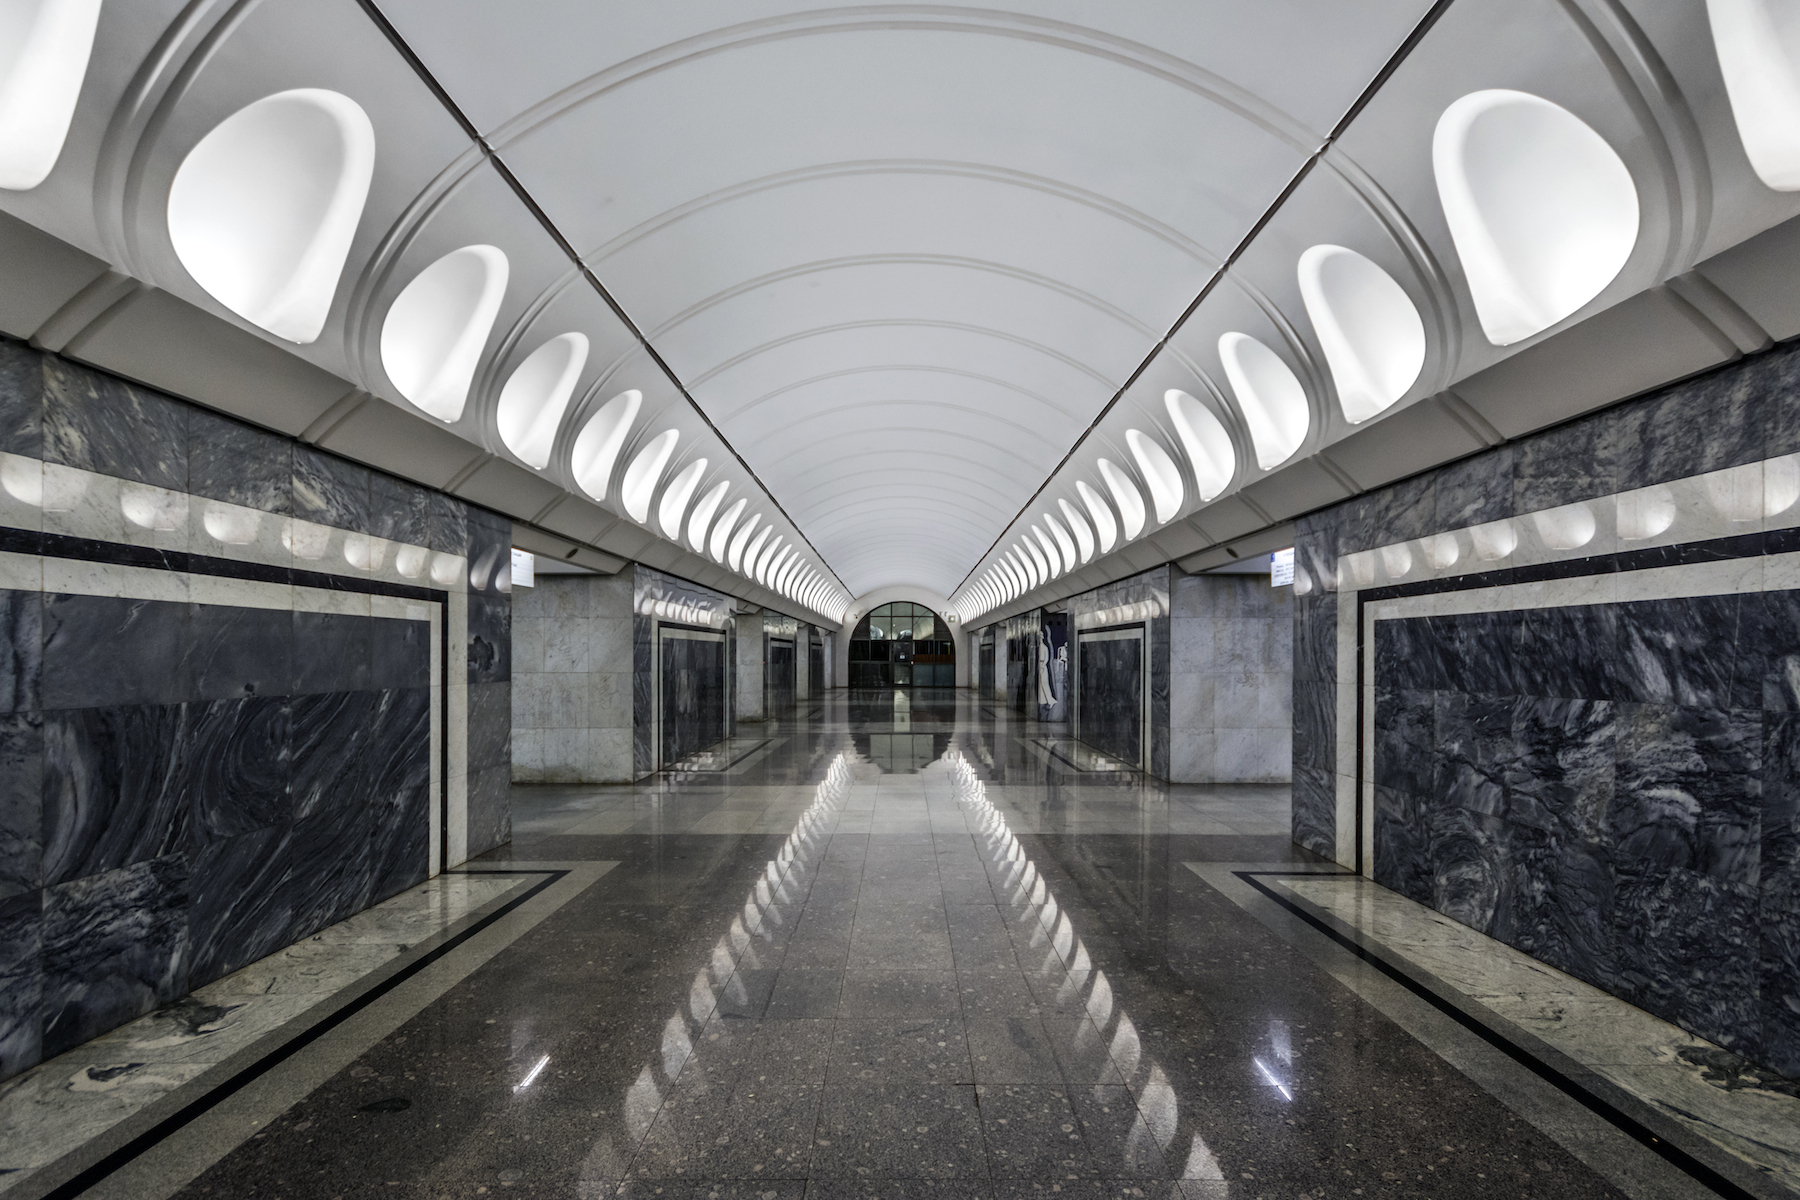 Dostoyevsky, a new station that opened in June 2010, was named after a prominent 19th century literary figure.